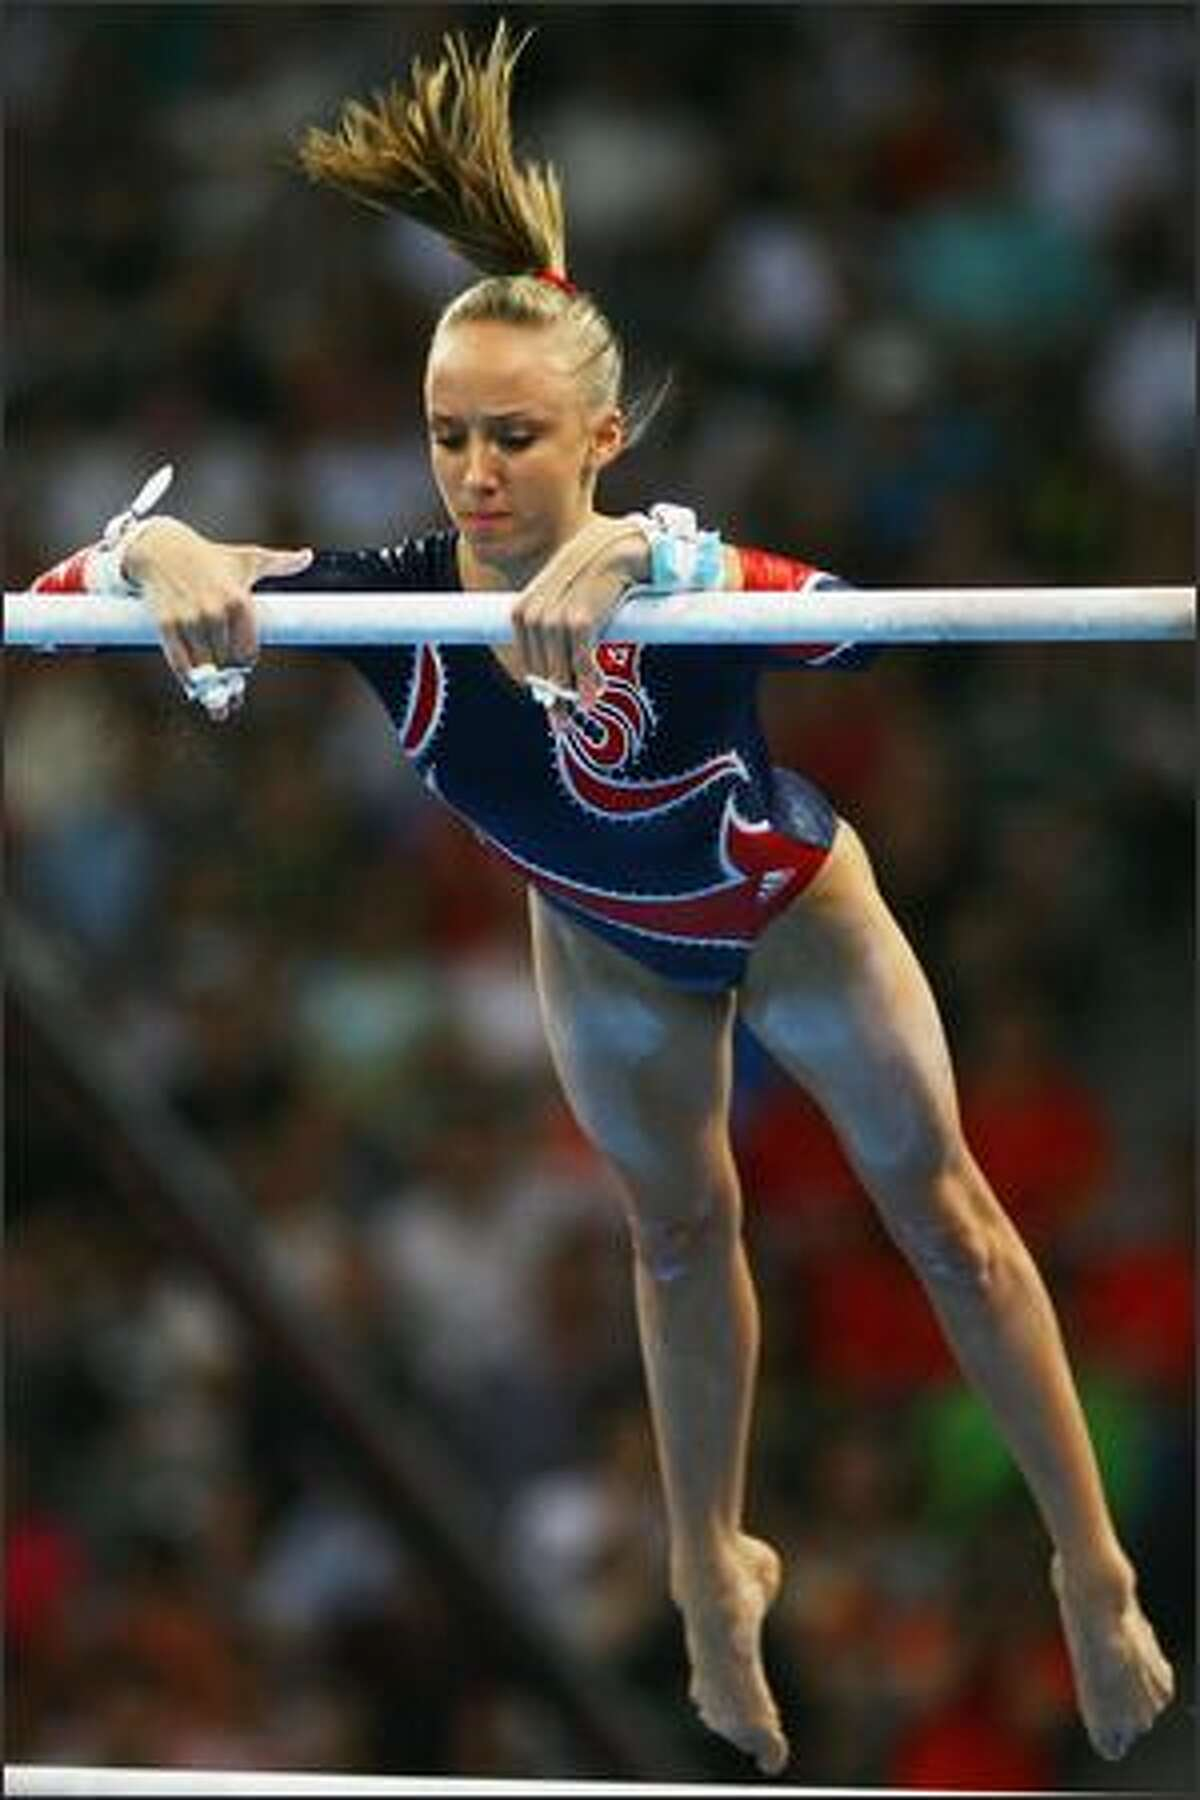 Nastia Liukin of the United States competes in the women's uneven bars final during the artistic gymnastics at the National Indoor Stadium event on Day 10 of the Beijing 2008 Olympic Games on Monday.